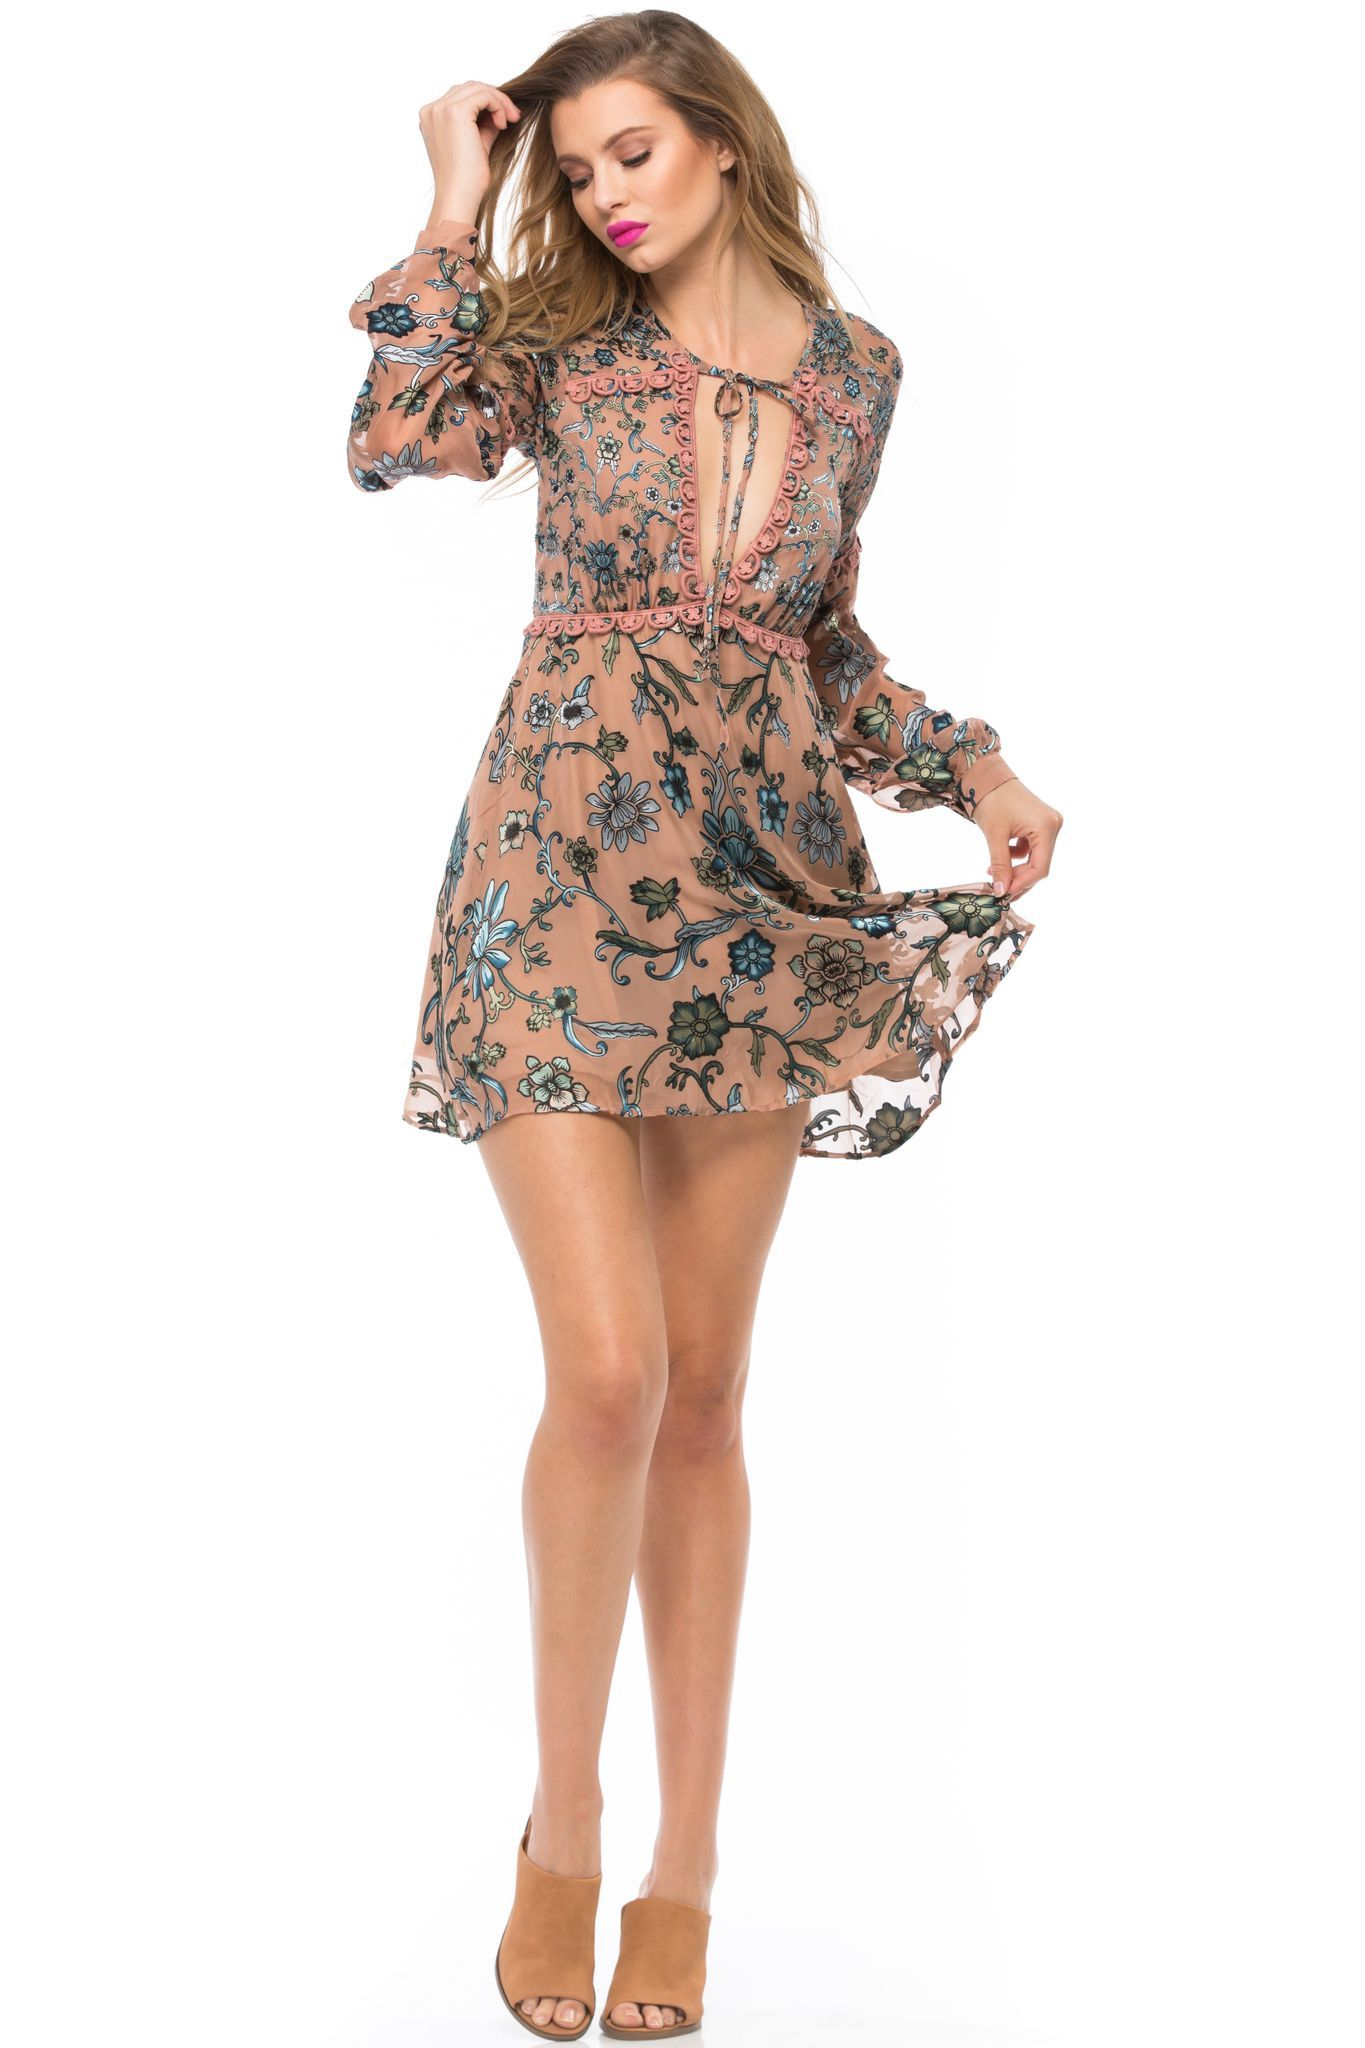 2020 Women Dress Casual Dress Print Pink Homecoming Dress Business Casual Shirts For Ladies